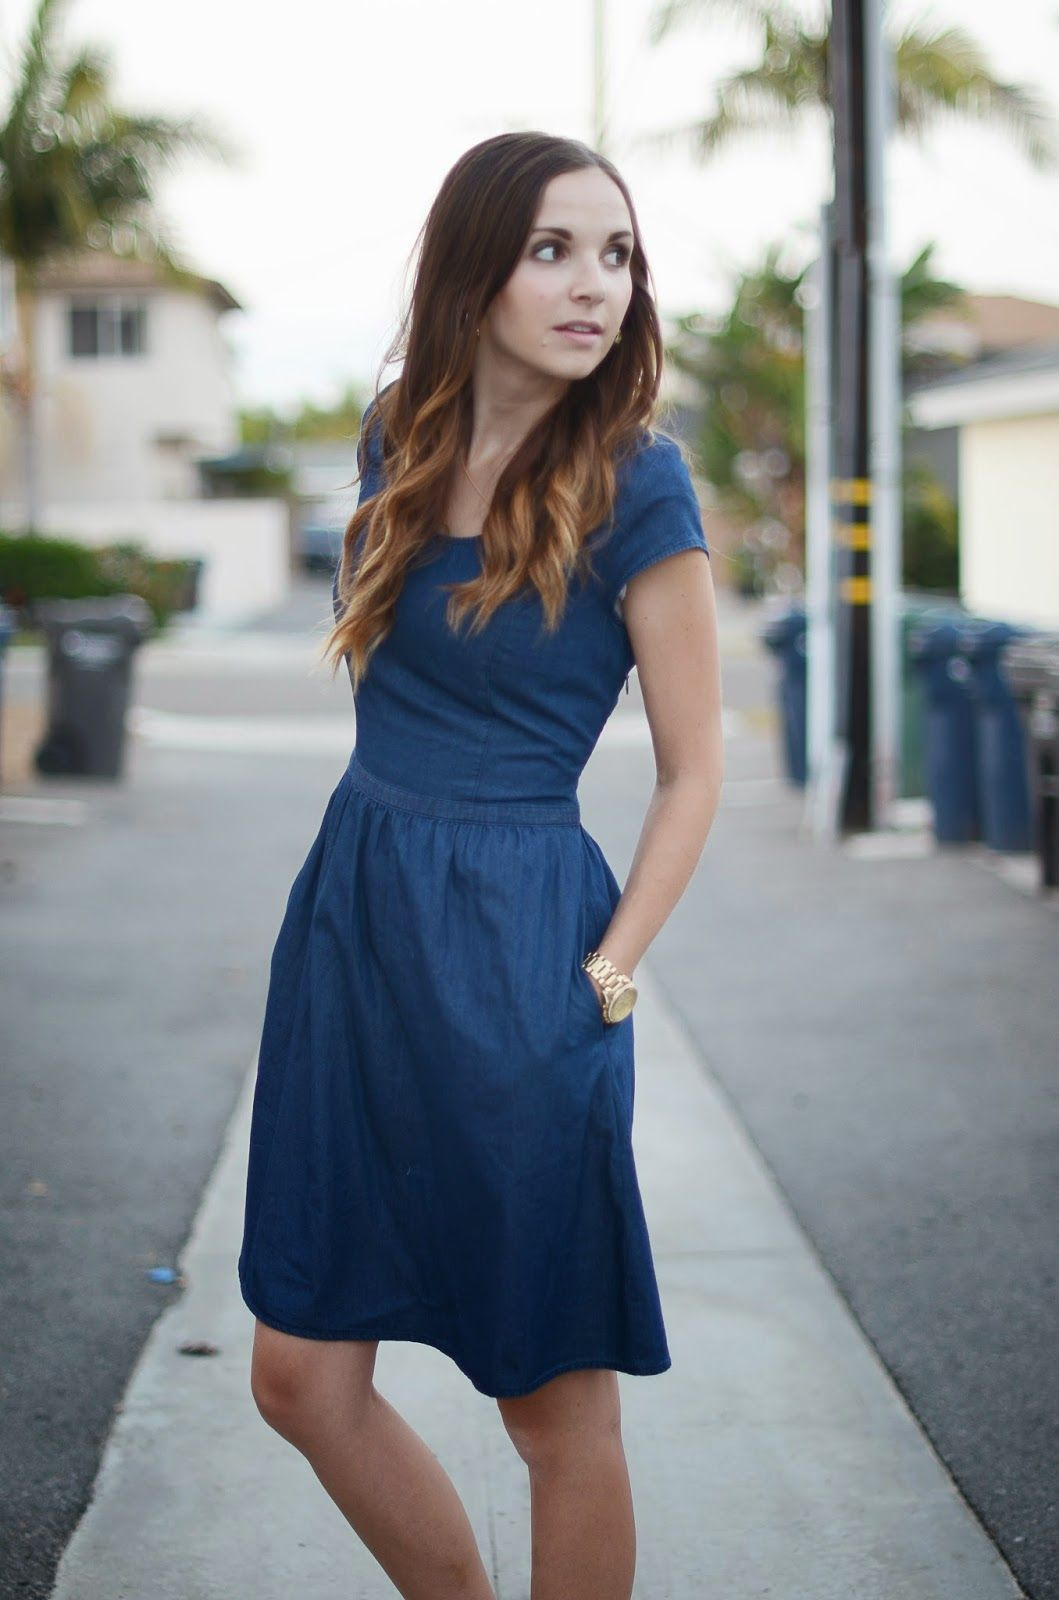 style dress for girl x cabrini